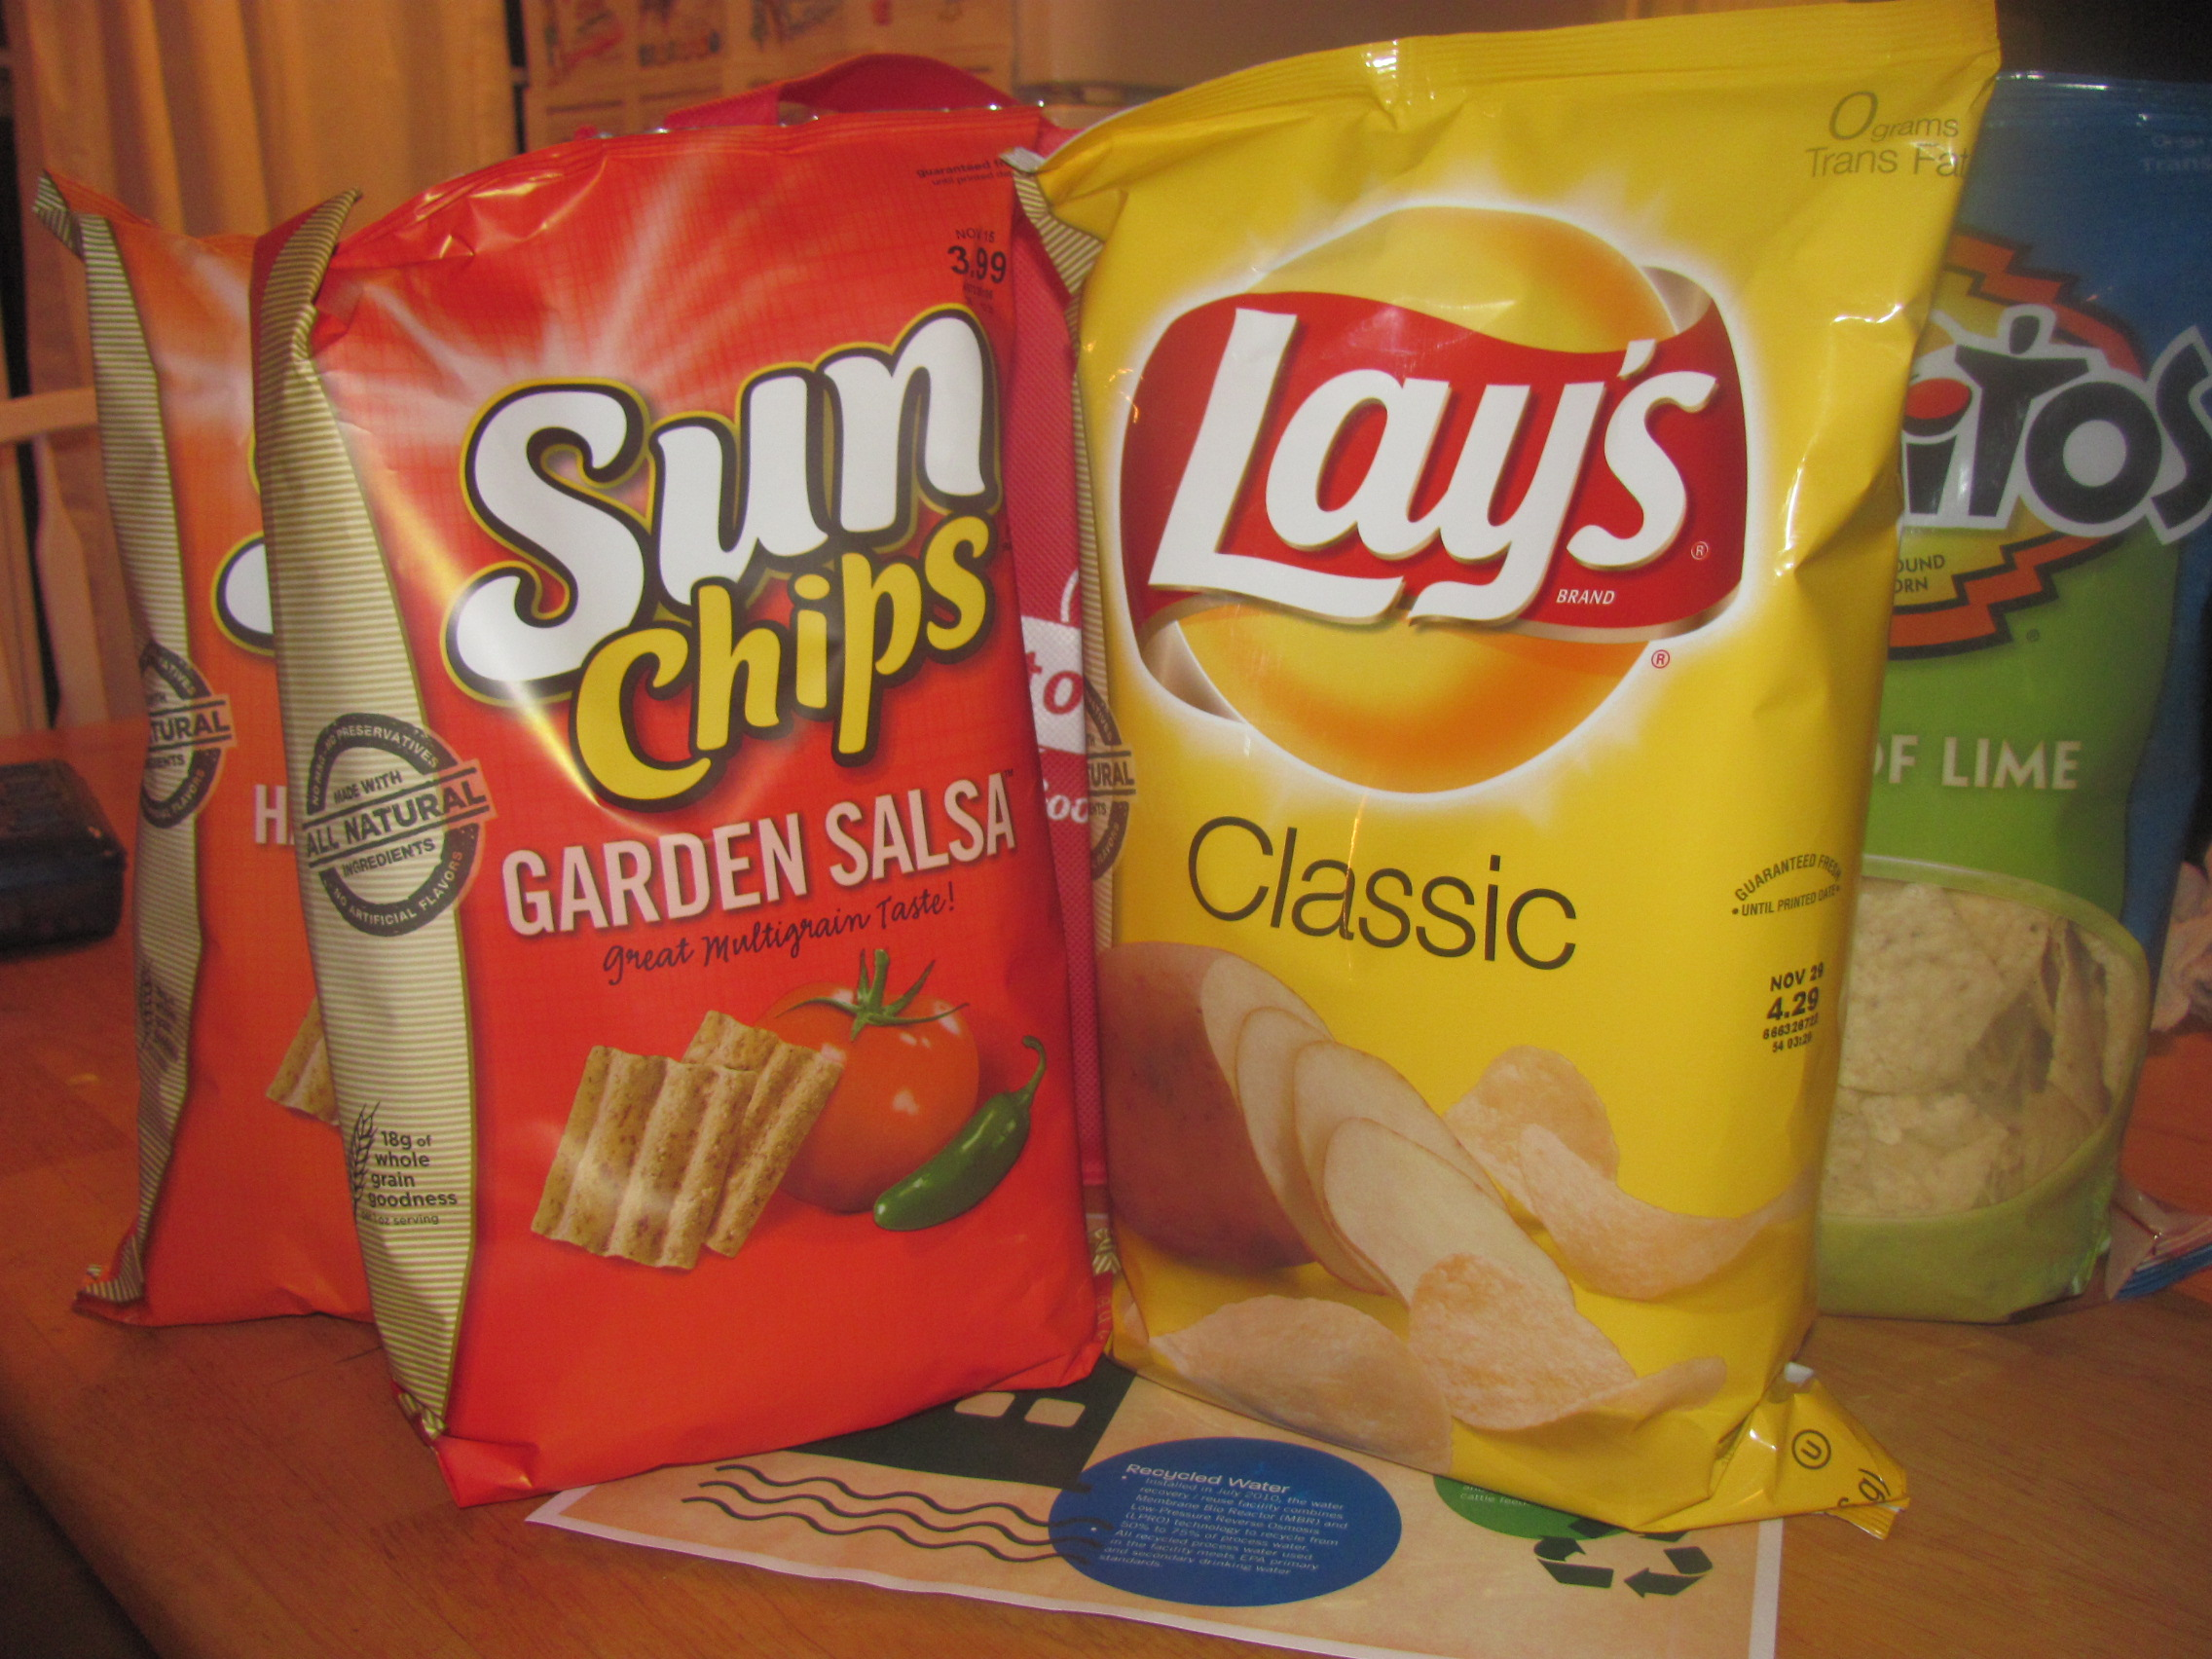 frito lay goes green fritolaygreen yellow tennessee we